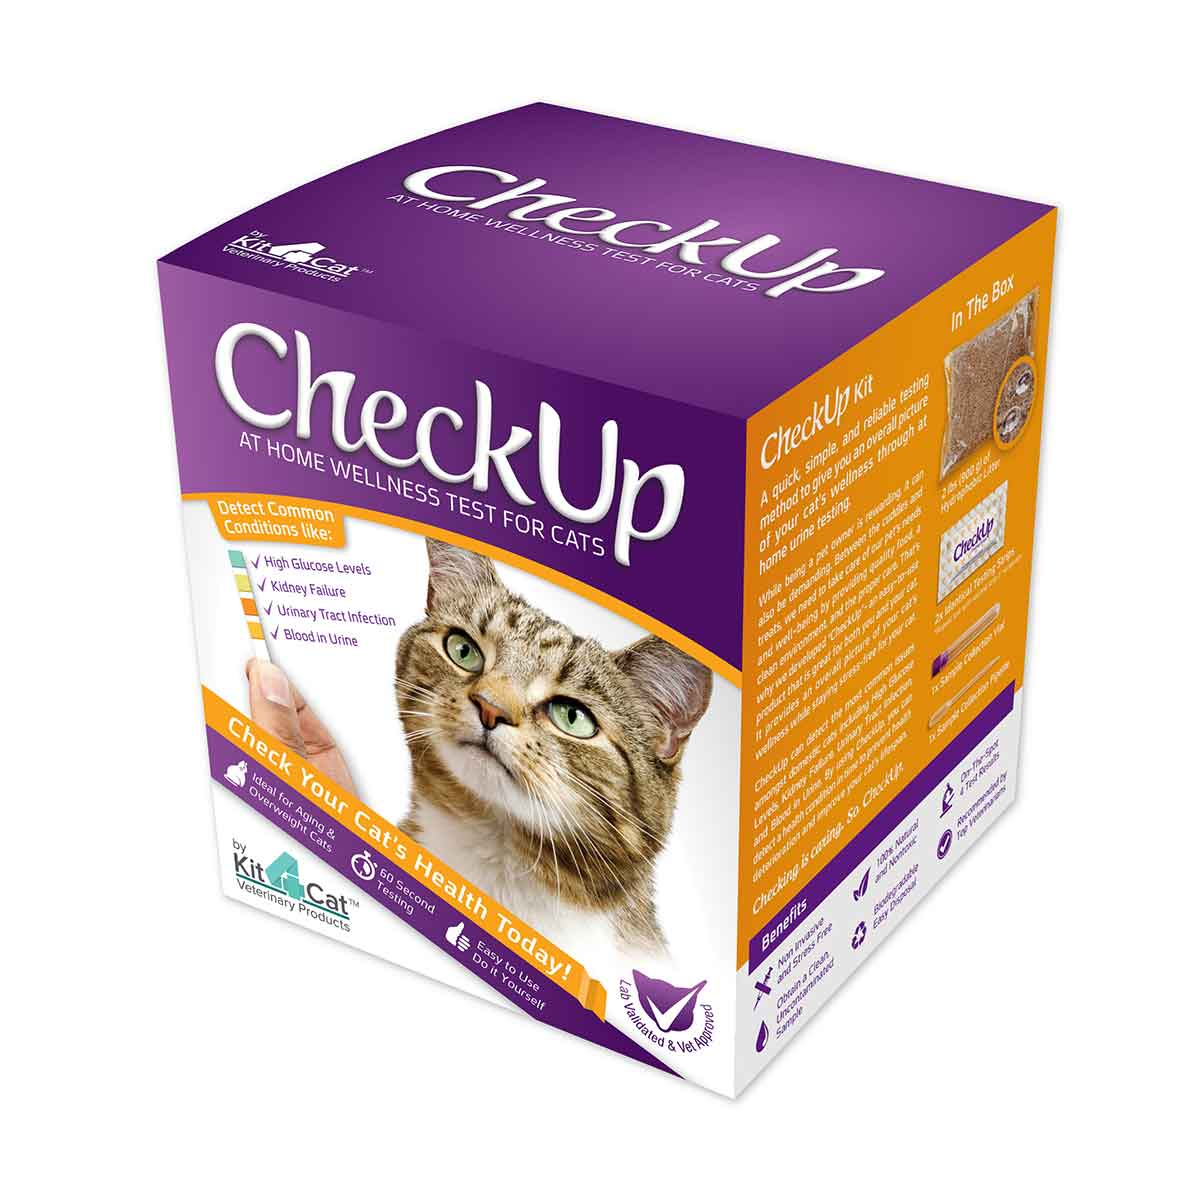 Coastline Global Checkup - At Home Wellness Test for Cats Cat Wellness - London the Local